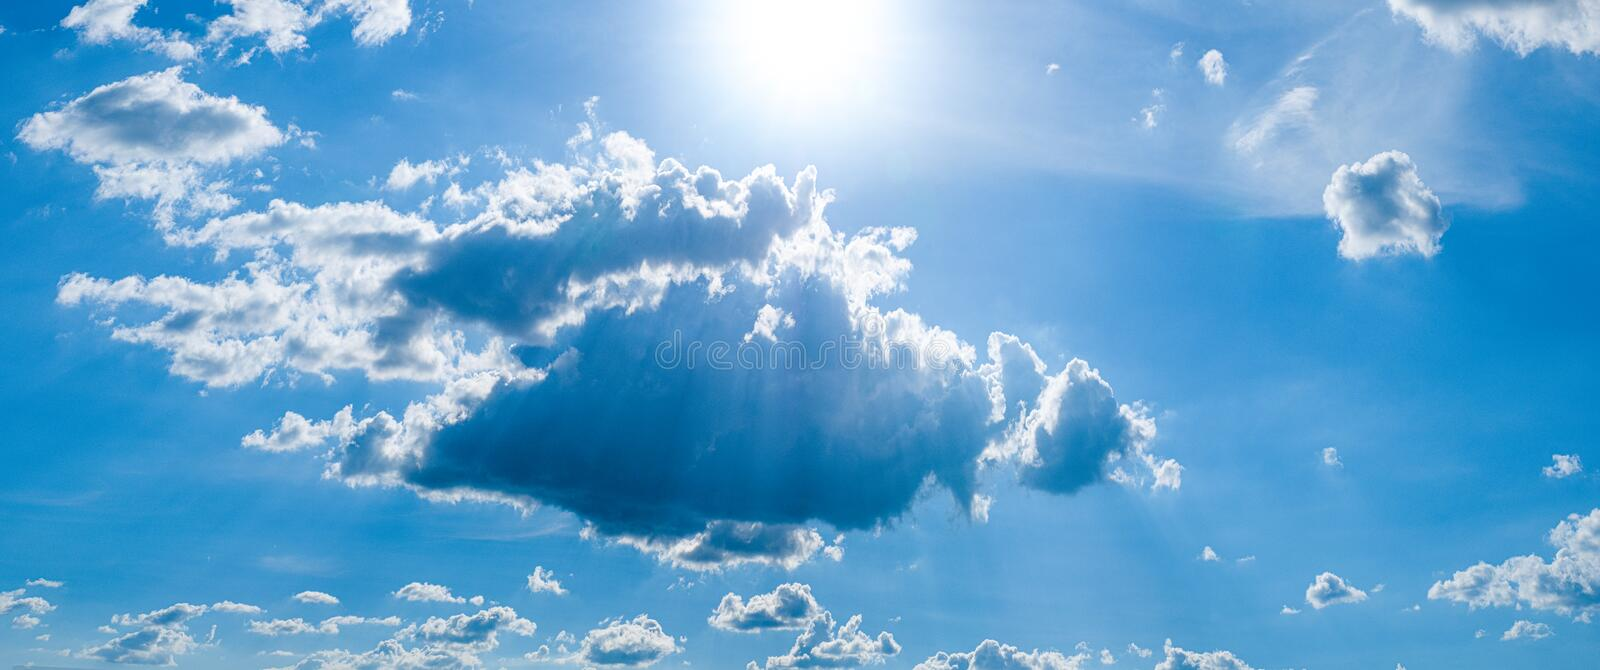 Beautiful blue sky with white clouds and sunlight. Background abstract panorama royalty free stock images